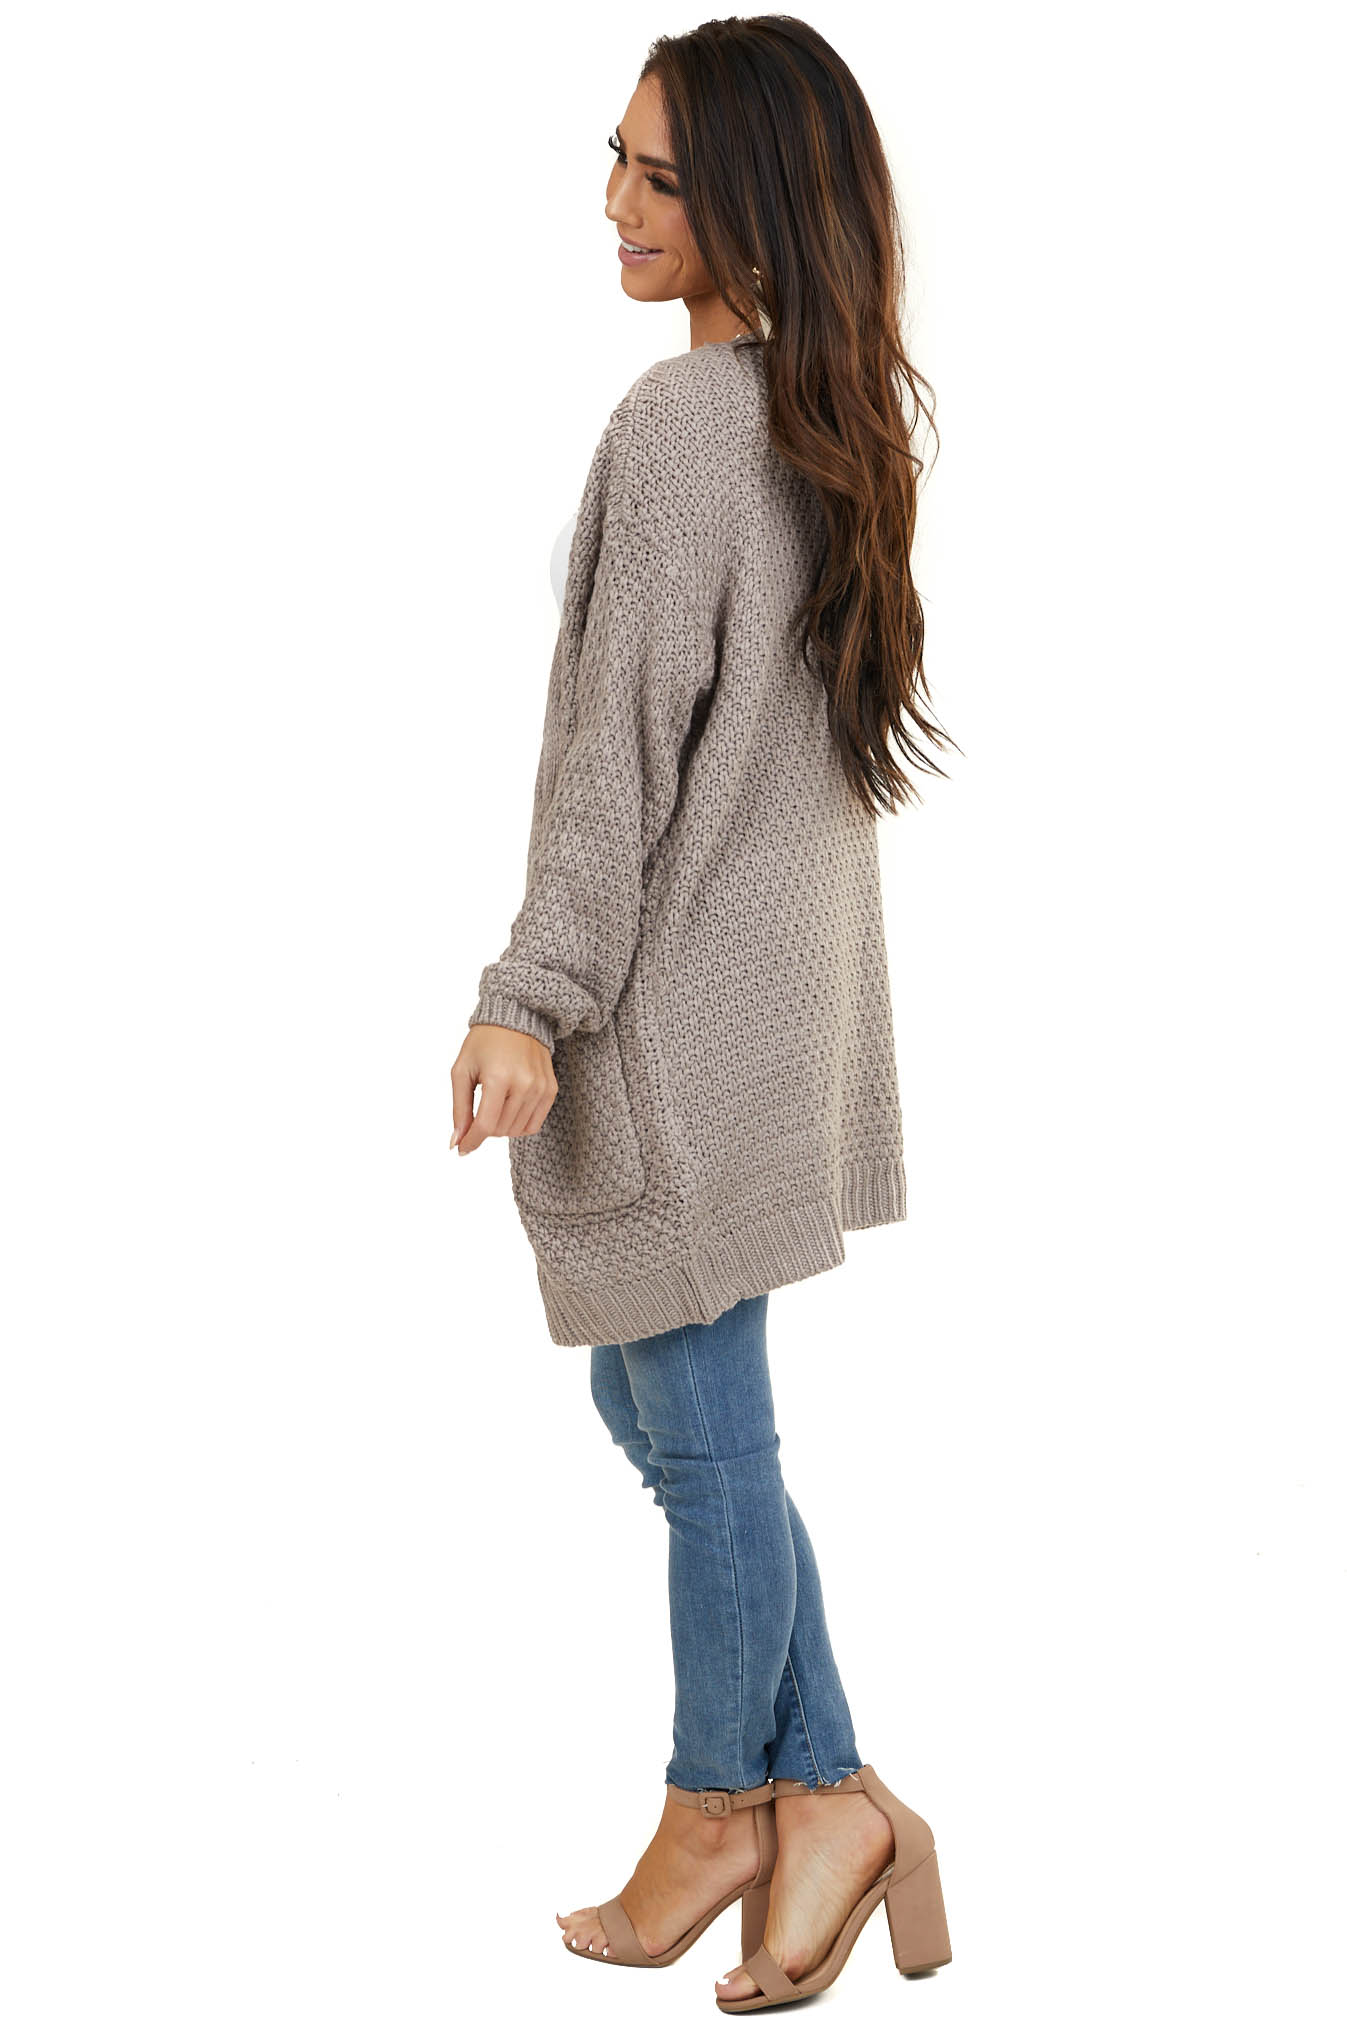 Pale Mocha Thick Cable Knit Open Cardigan with Pockets